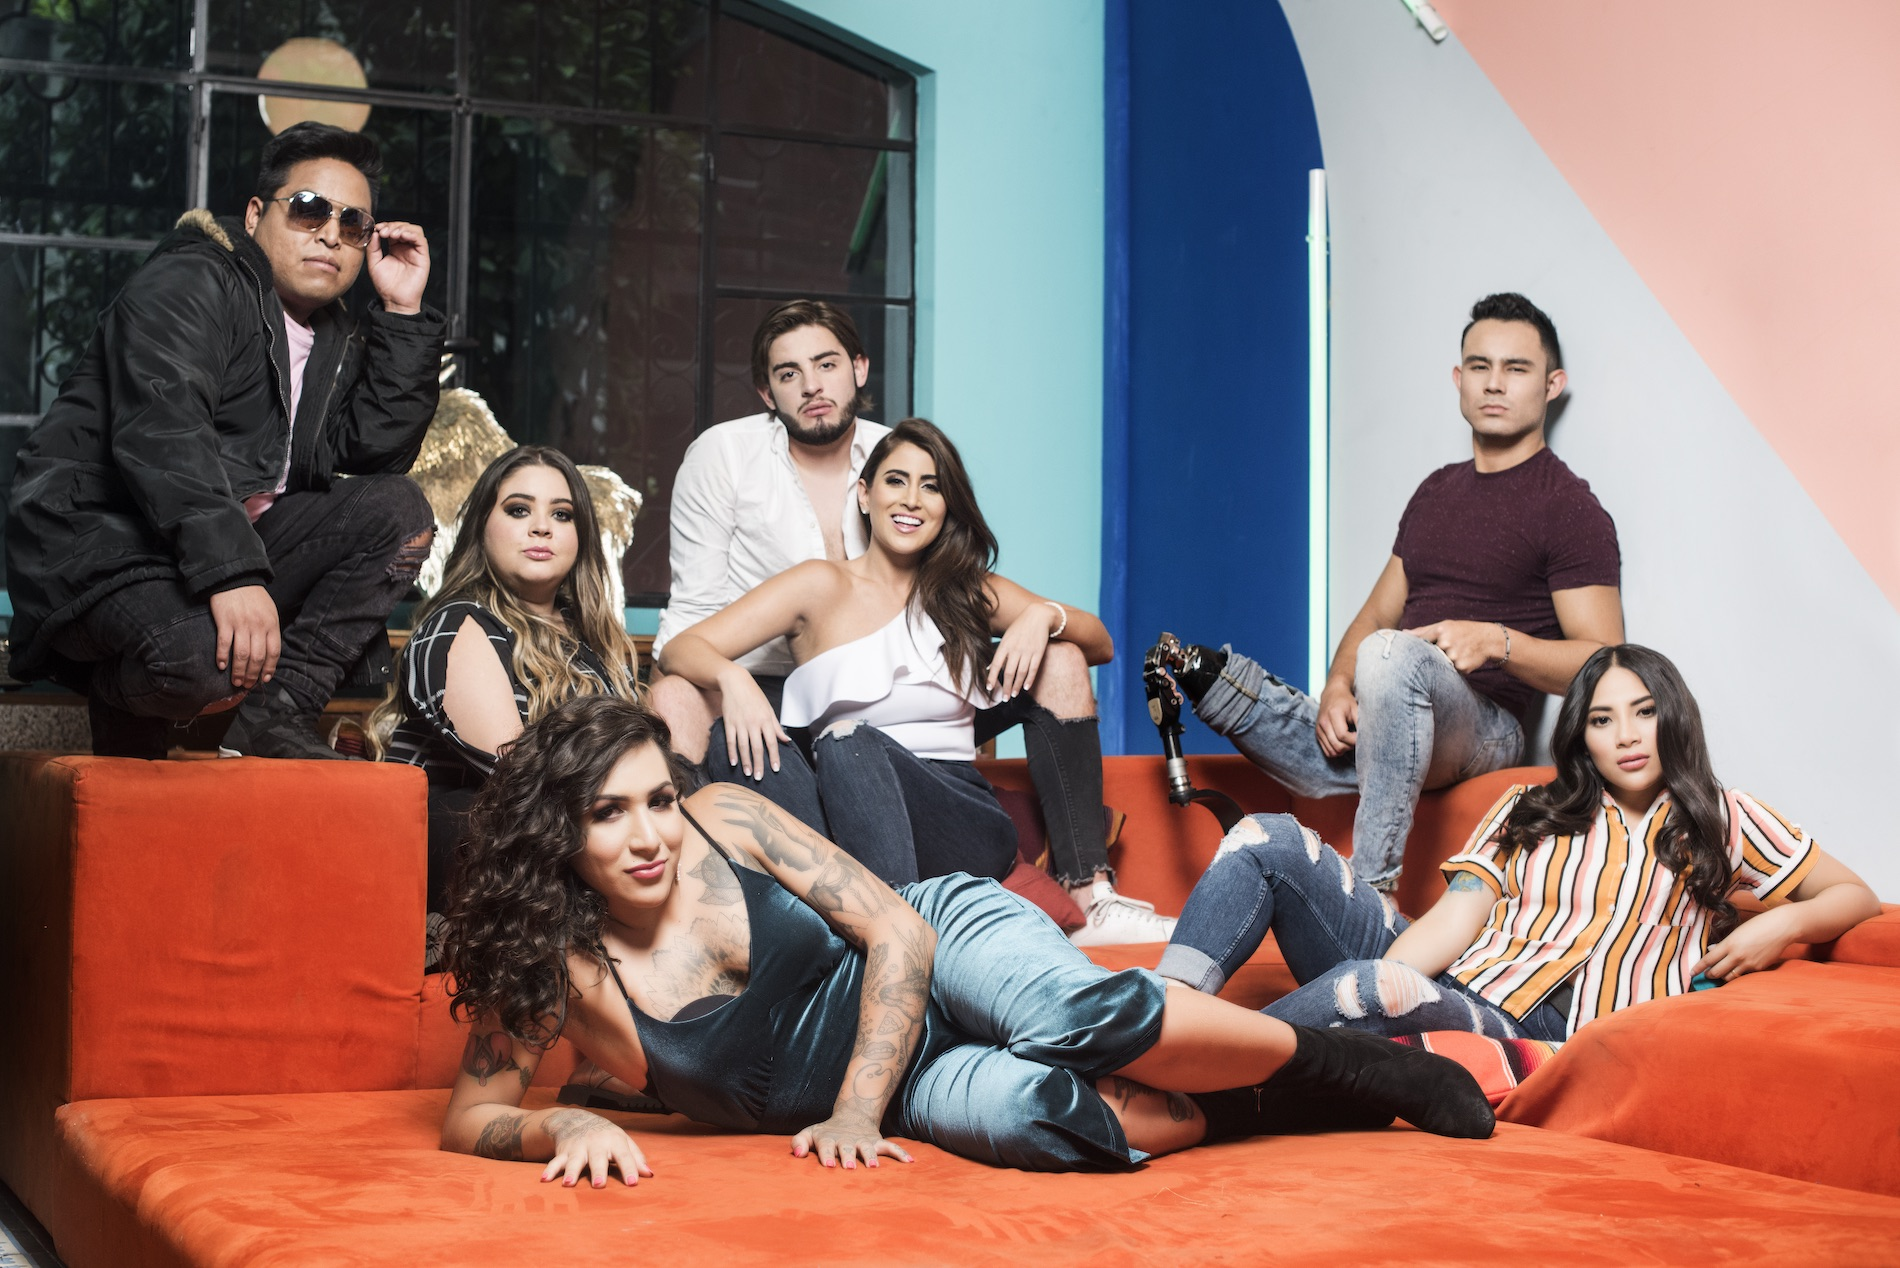 TRAILER: Get a Glimpse of MTV's Reboot of 'The Real World' Set in Mexico City